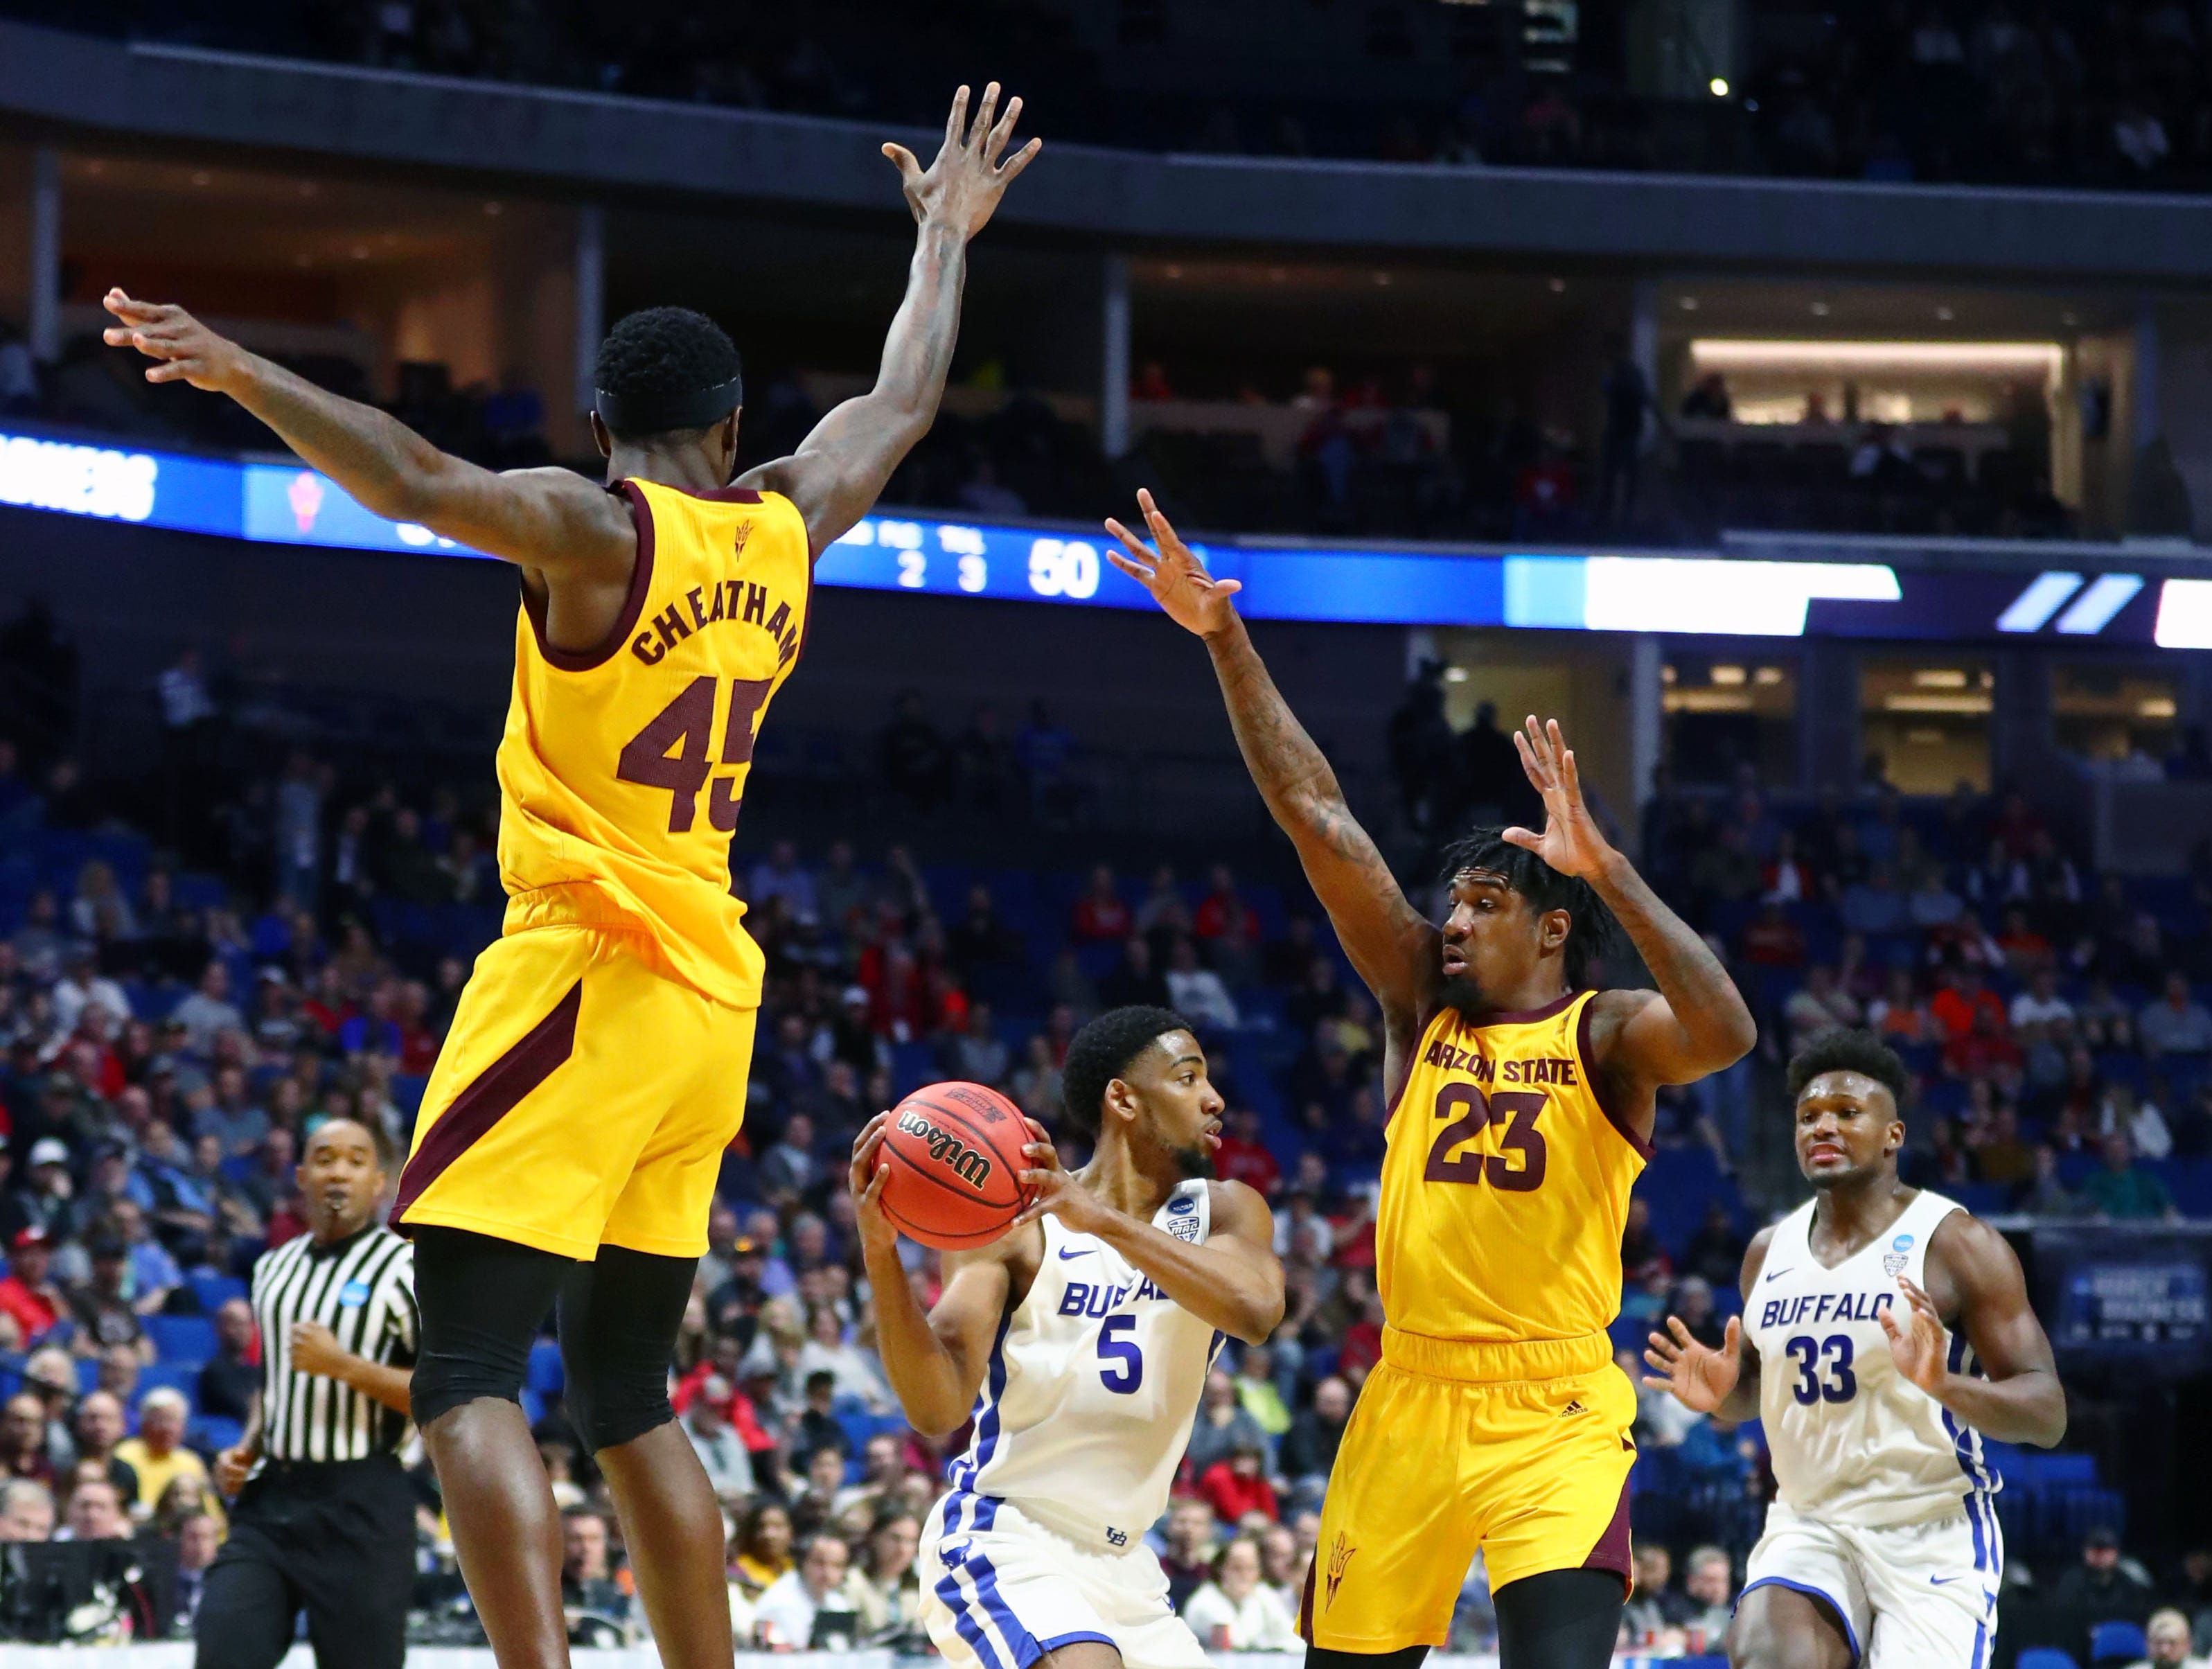 Mar 22, 2019; Tulsa, OK, USA; Buffalo Bulls guard CJ Massinburg (5) holds the ball while under pressure by Arizona State Sun Devils forward Zylan Cheatham (45) and forward Romello White (23) during the second half in the first round of the 2019 NCAA Tournament at BOK Center. Mandatory Credit: Mark J. Rebilas-USA TODAY Sports